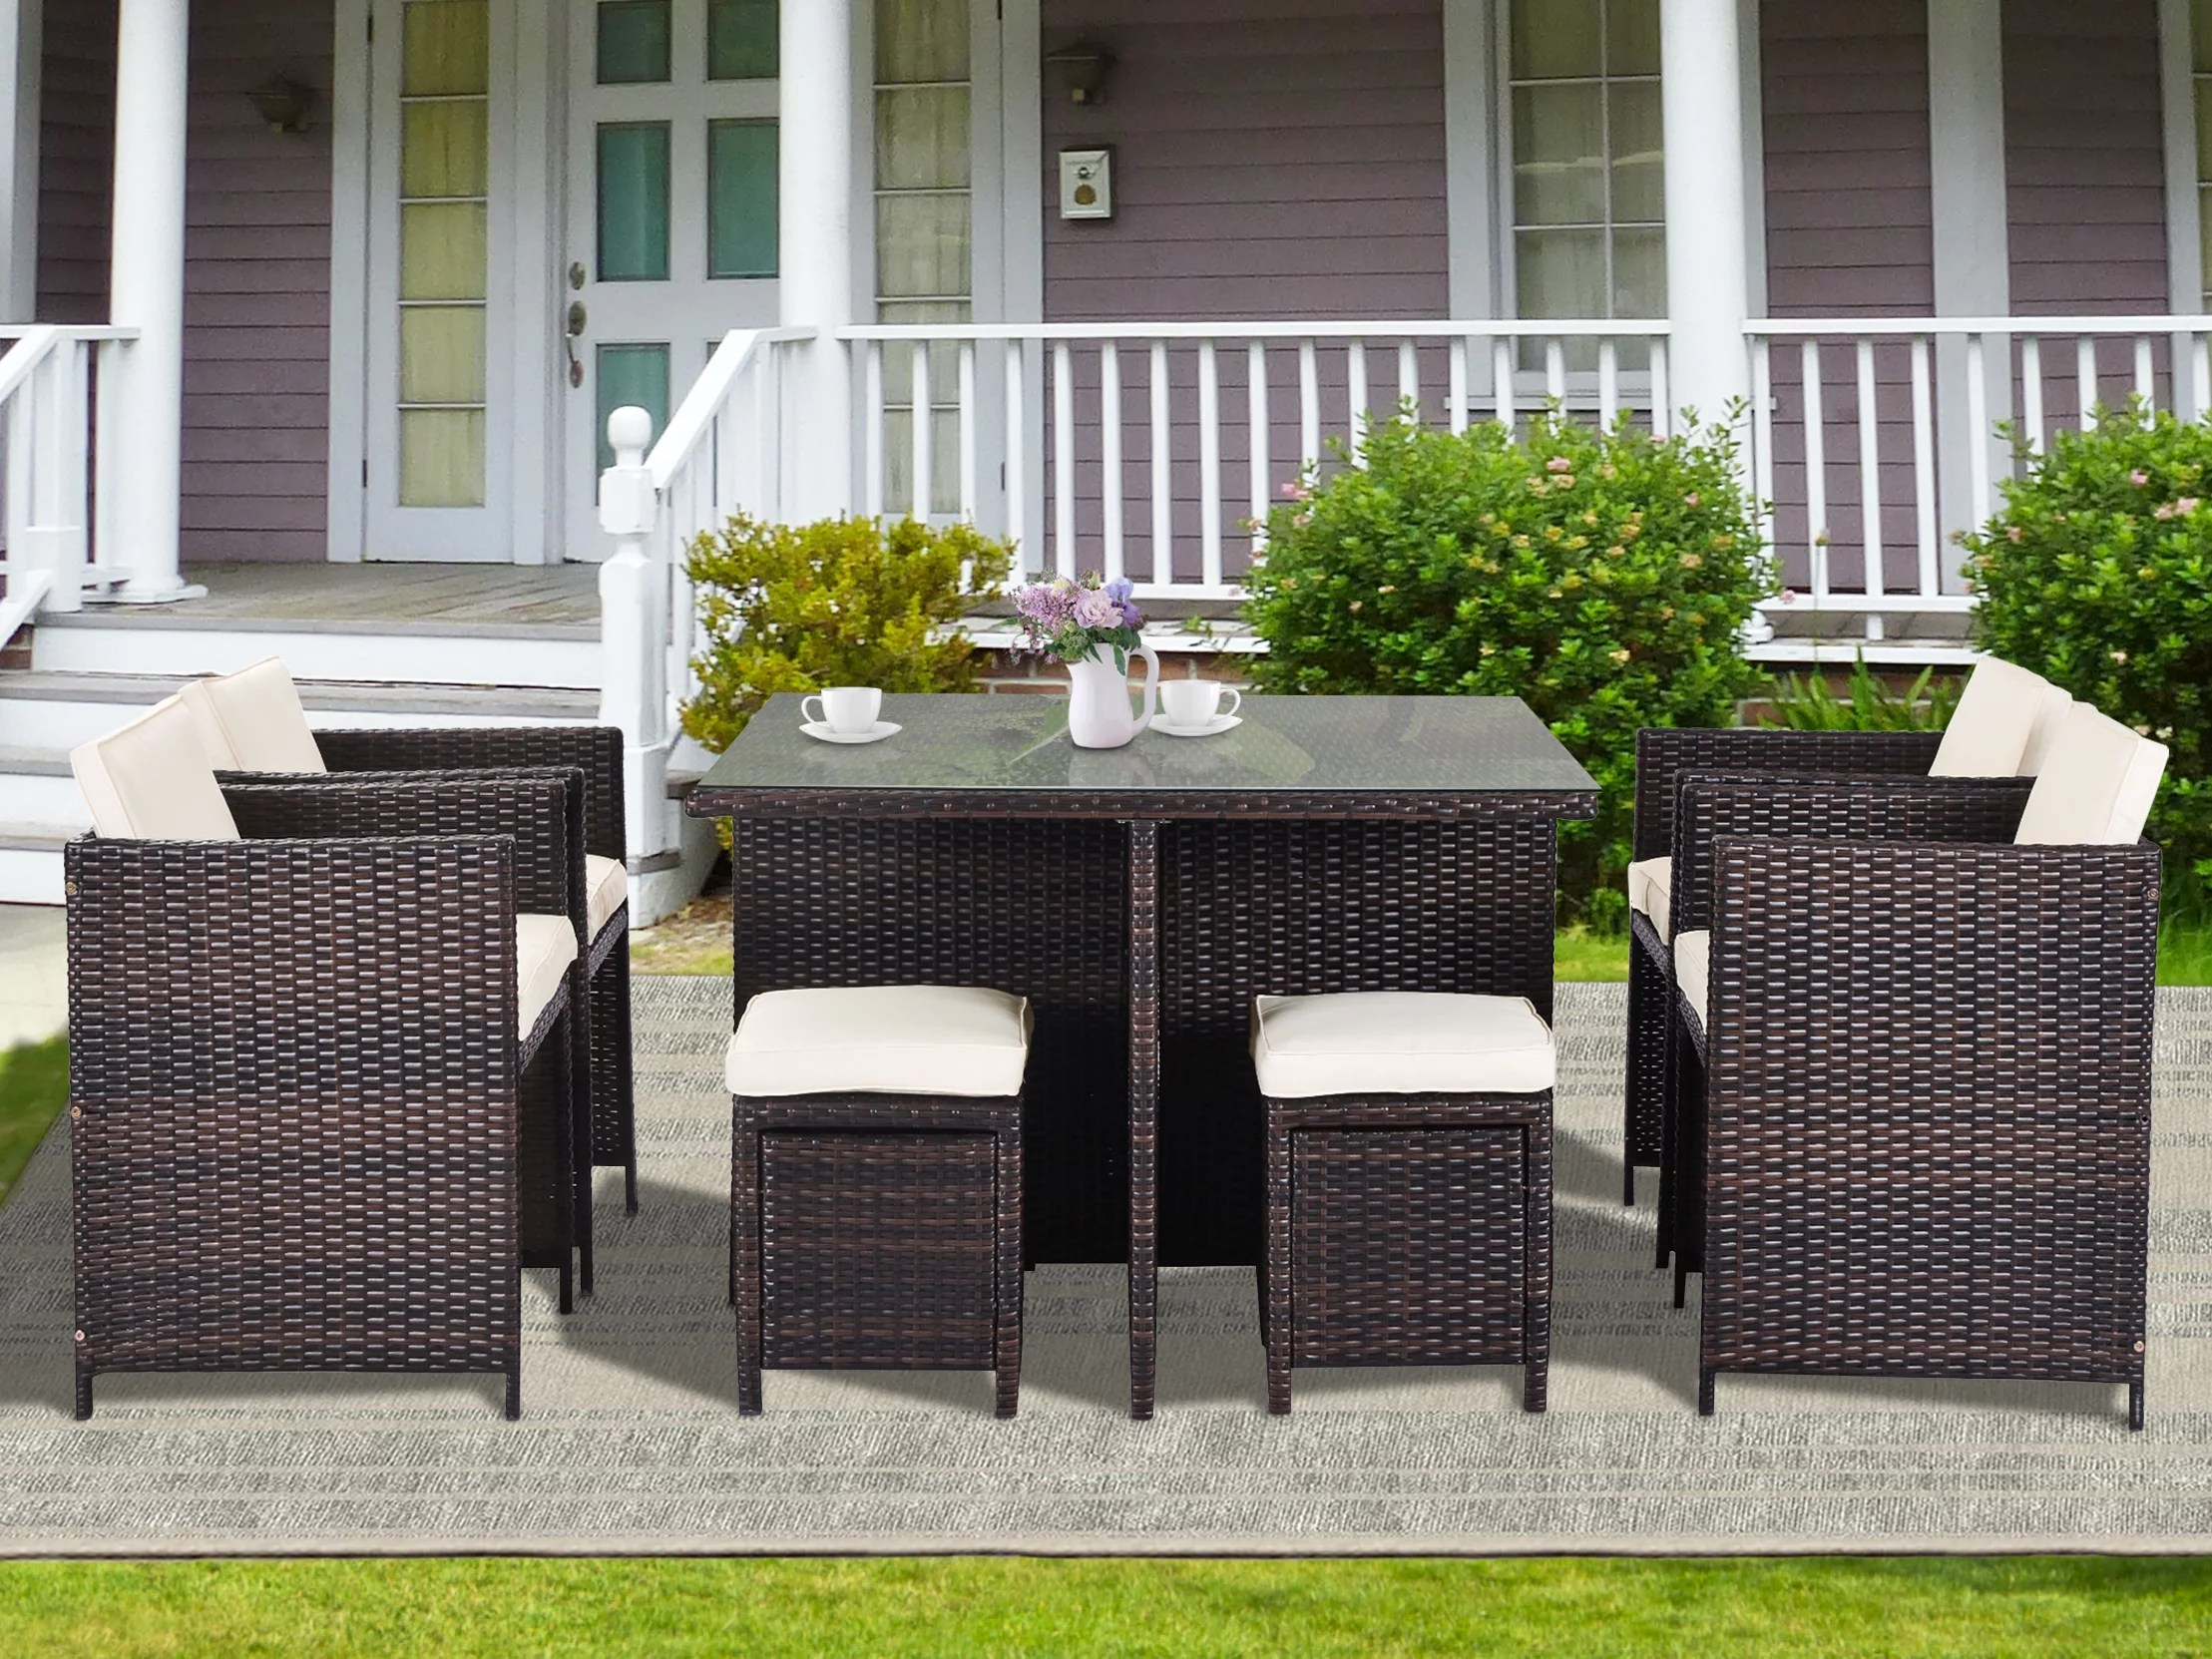 enyopro 9 piece patio furniture dining set outdoor rattan wicker patio dining table set all weather conversation set with ottoman for garden